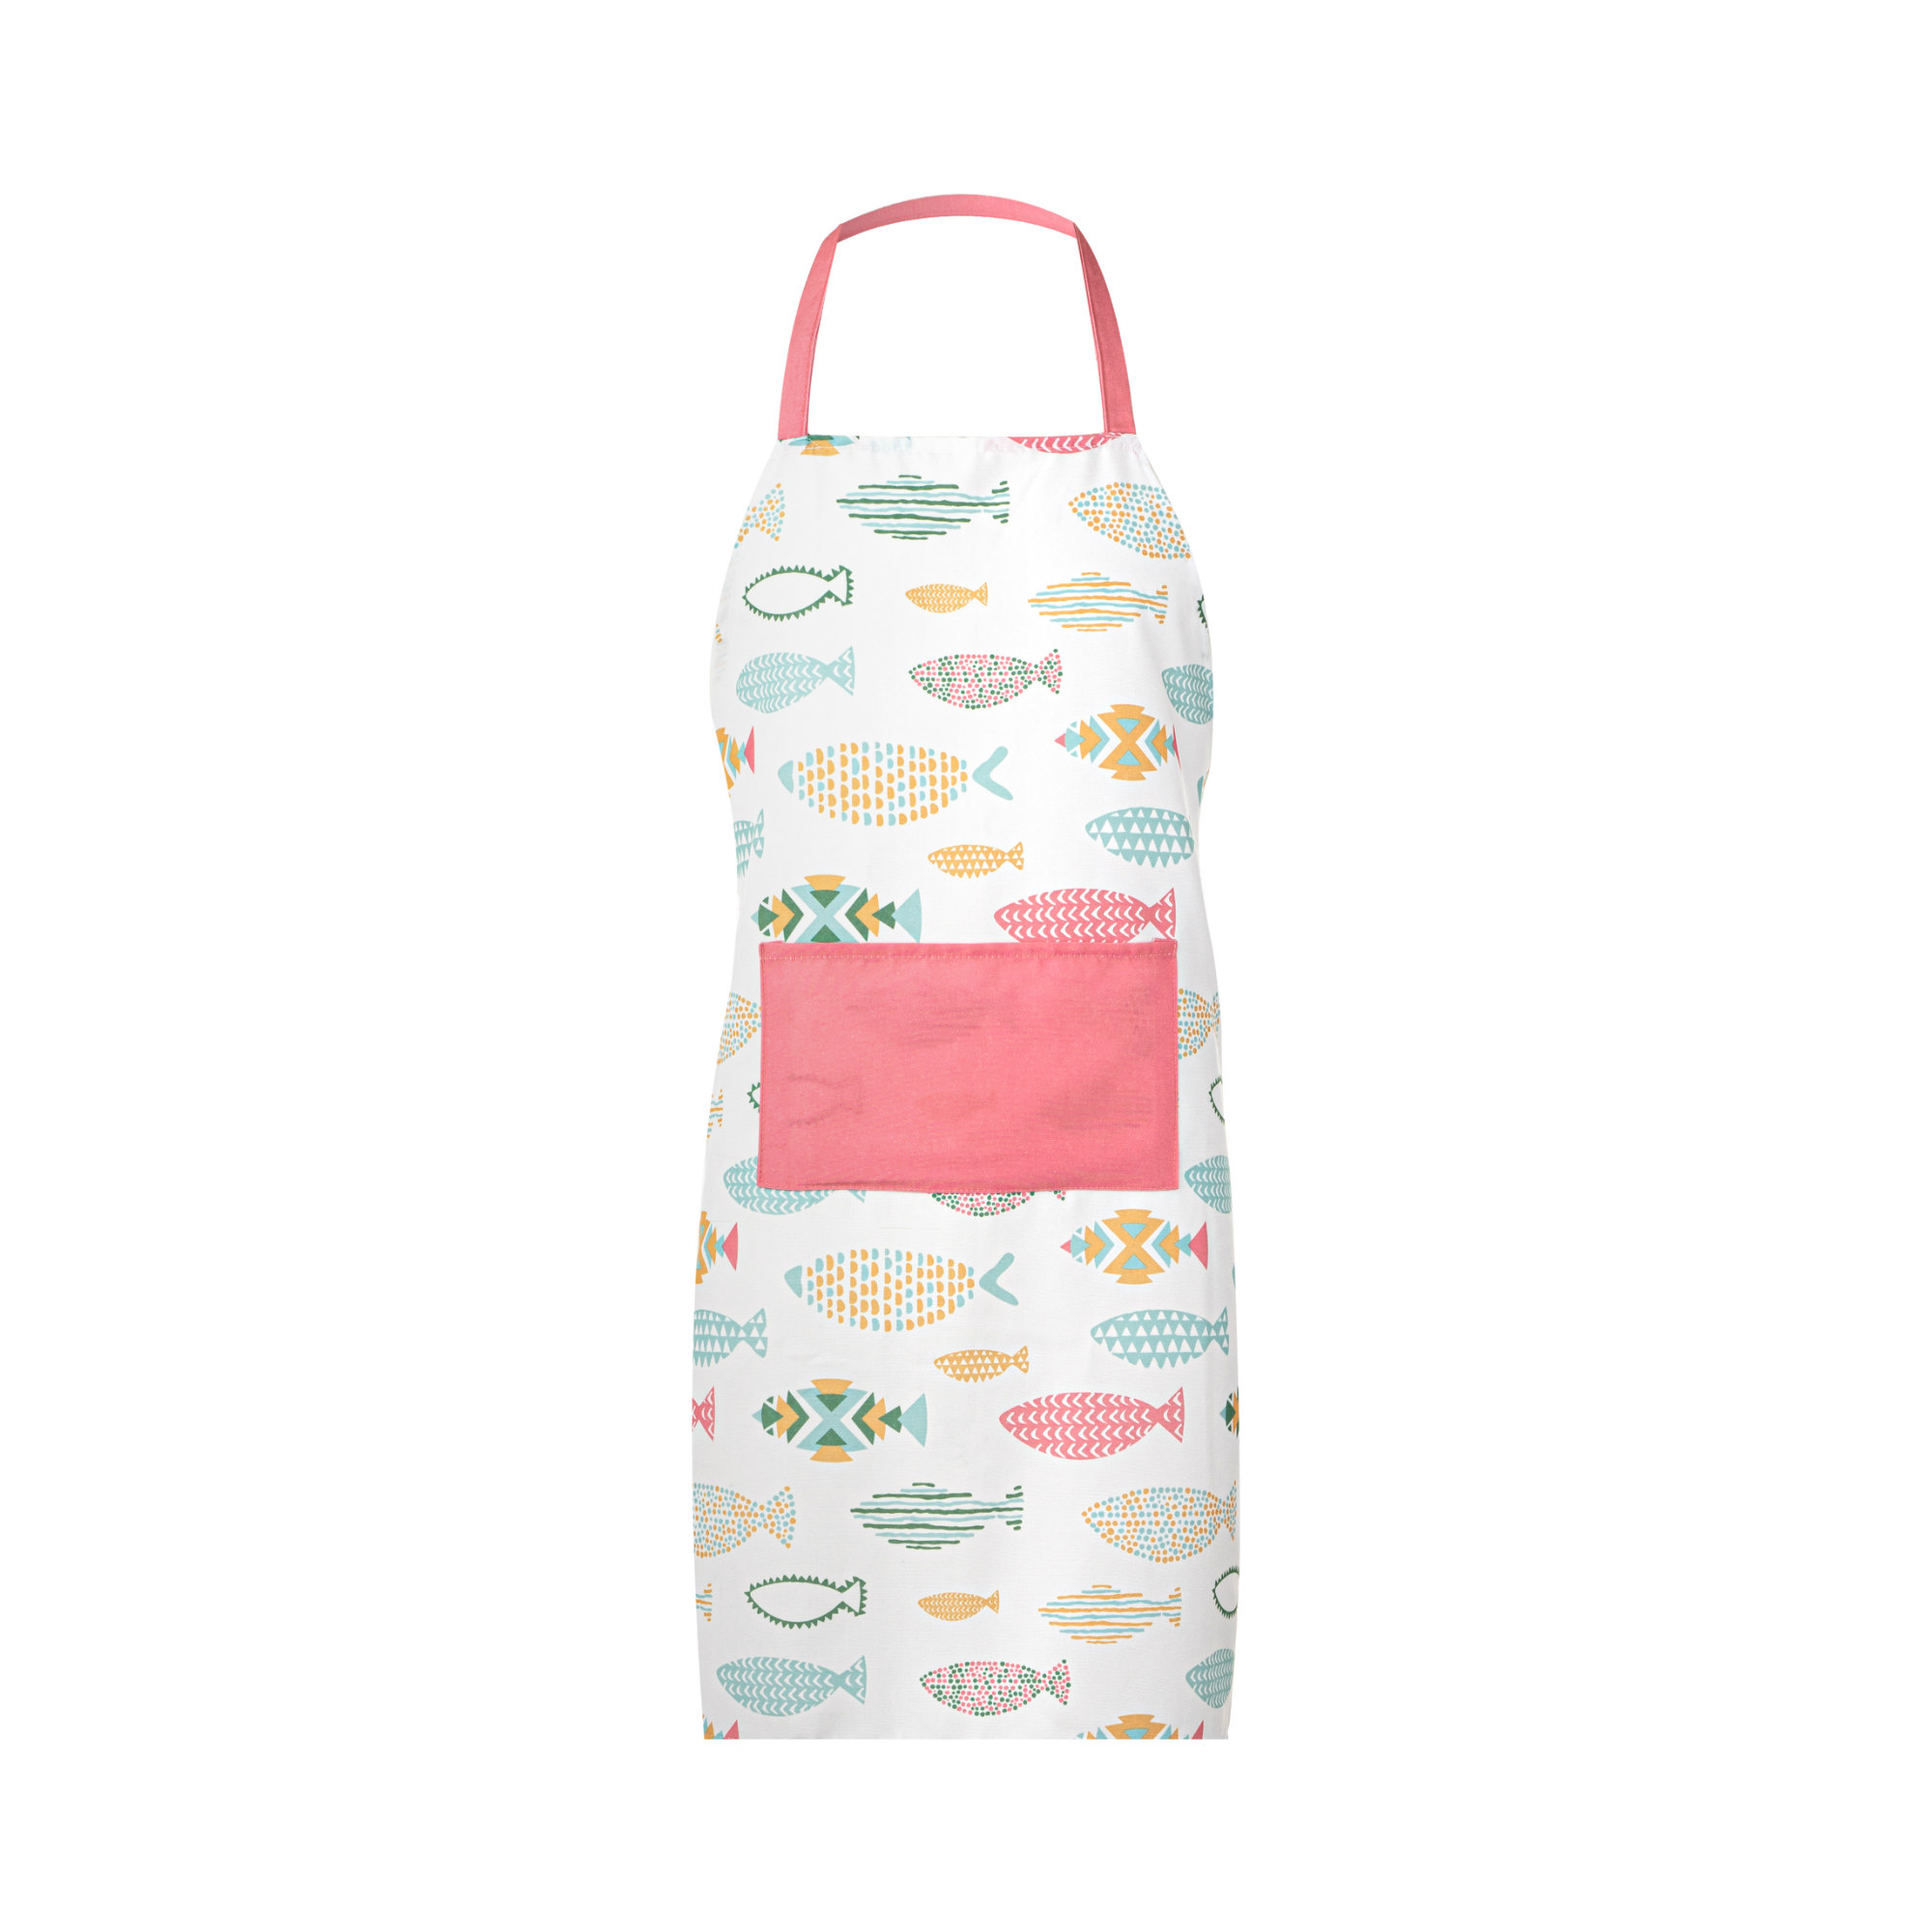 Fishes Printed Kitchen Set. Apron With Pocket, Oven Mitt & Potholder.  Easy Care Polycotton. Multi-Color